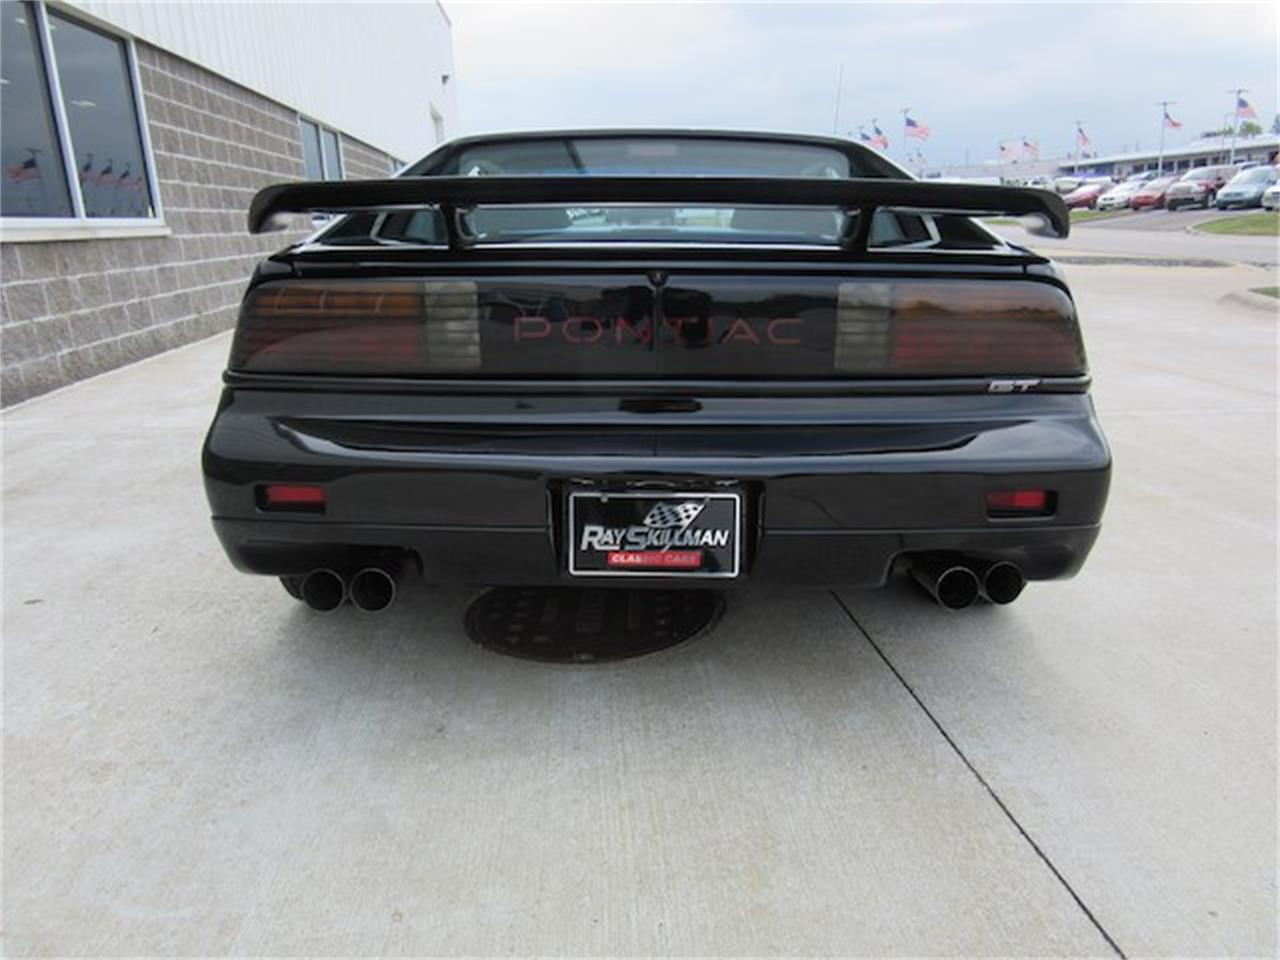 Large Picture of 1988 Pontiac Fiero located in Greenwood Indiana - $15,900.00 - NVQQ